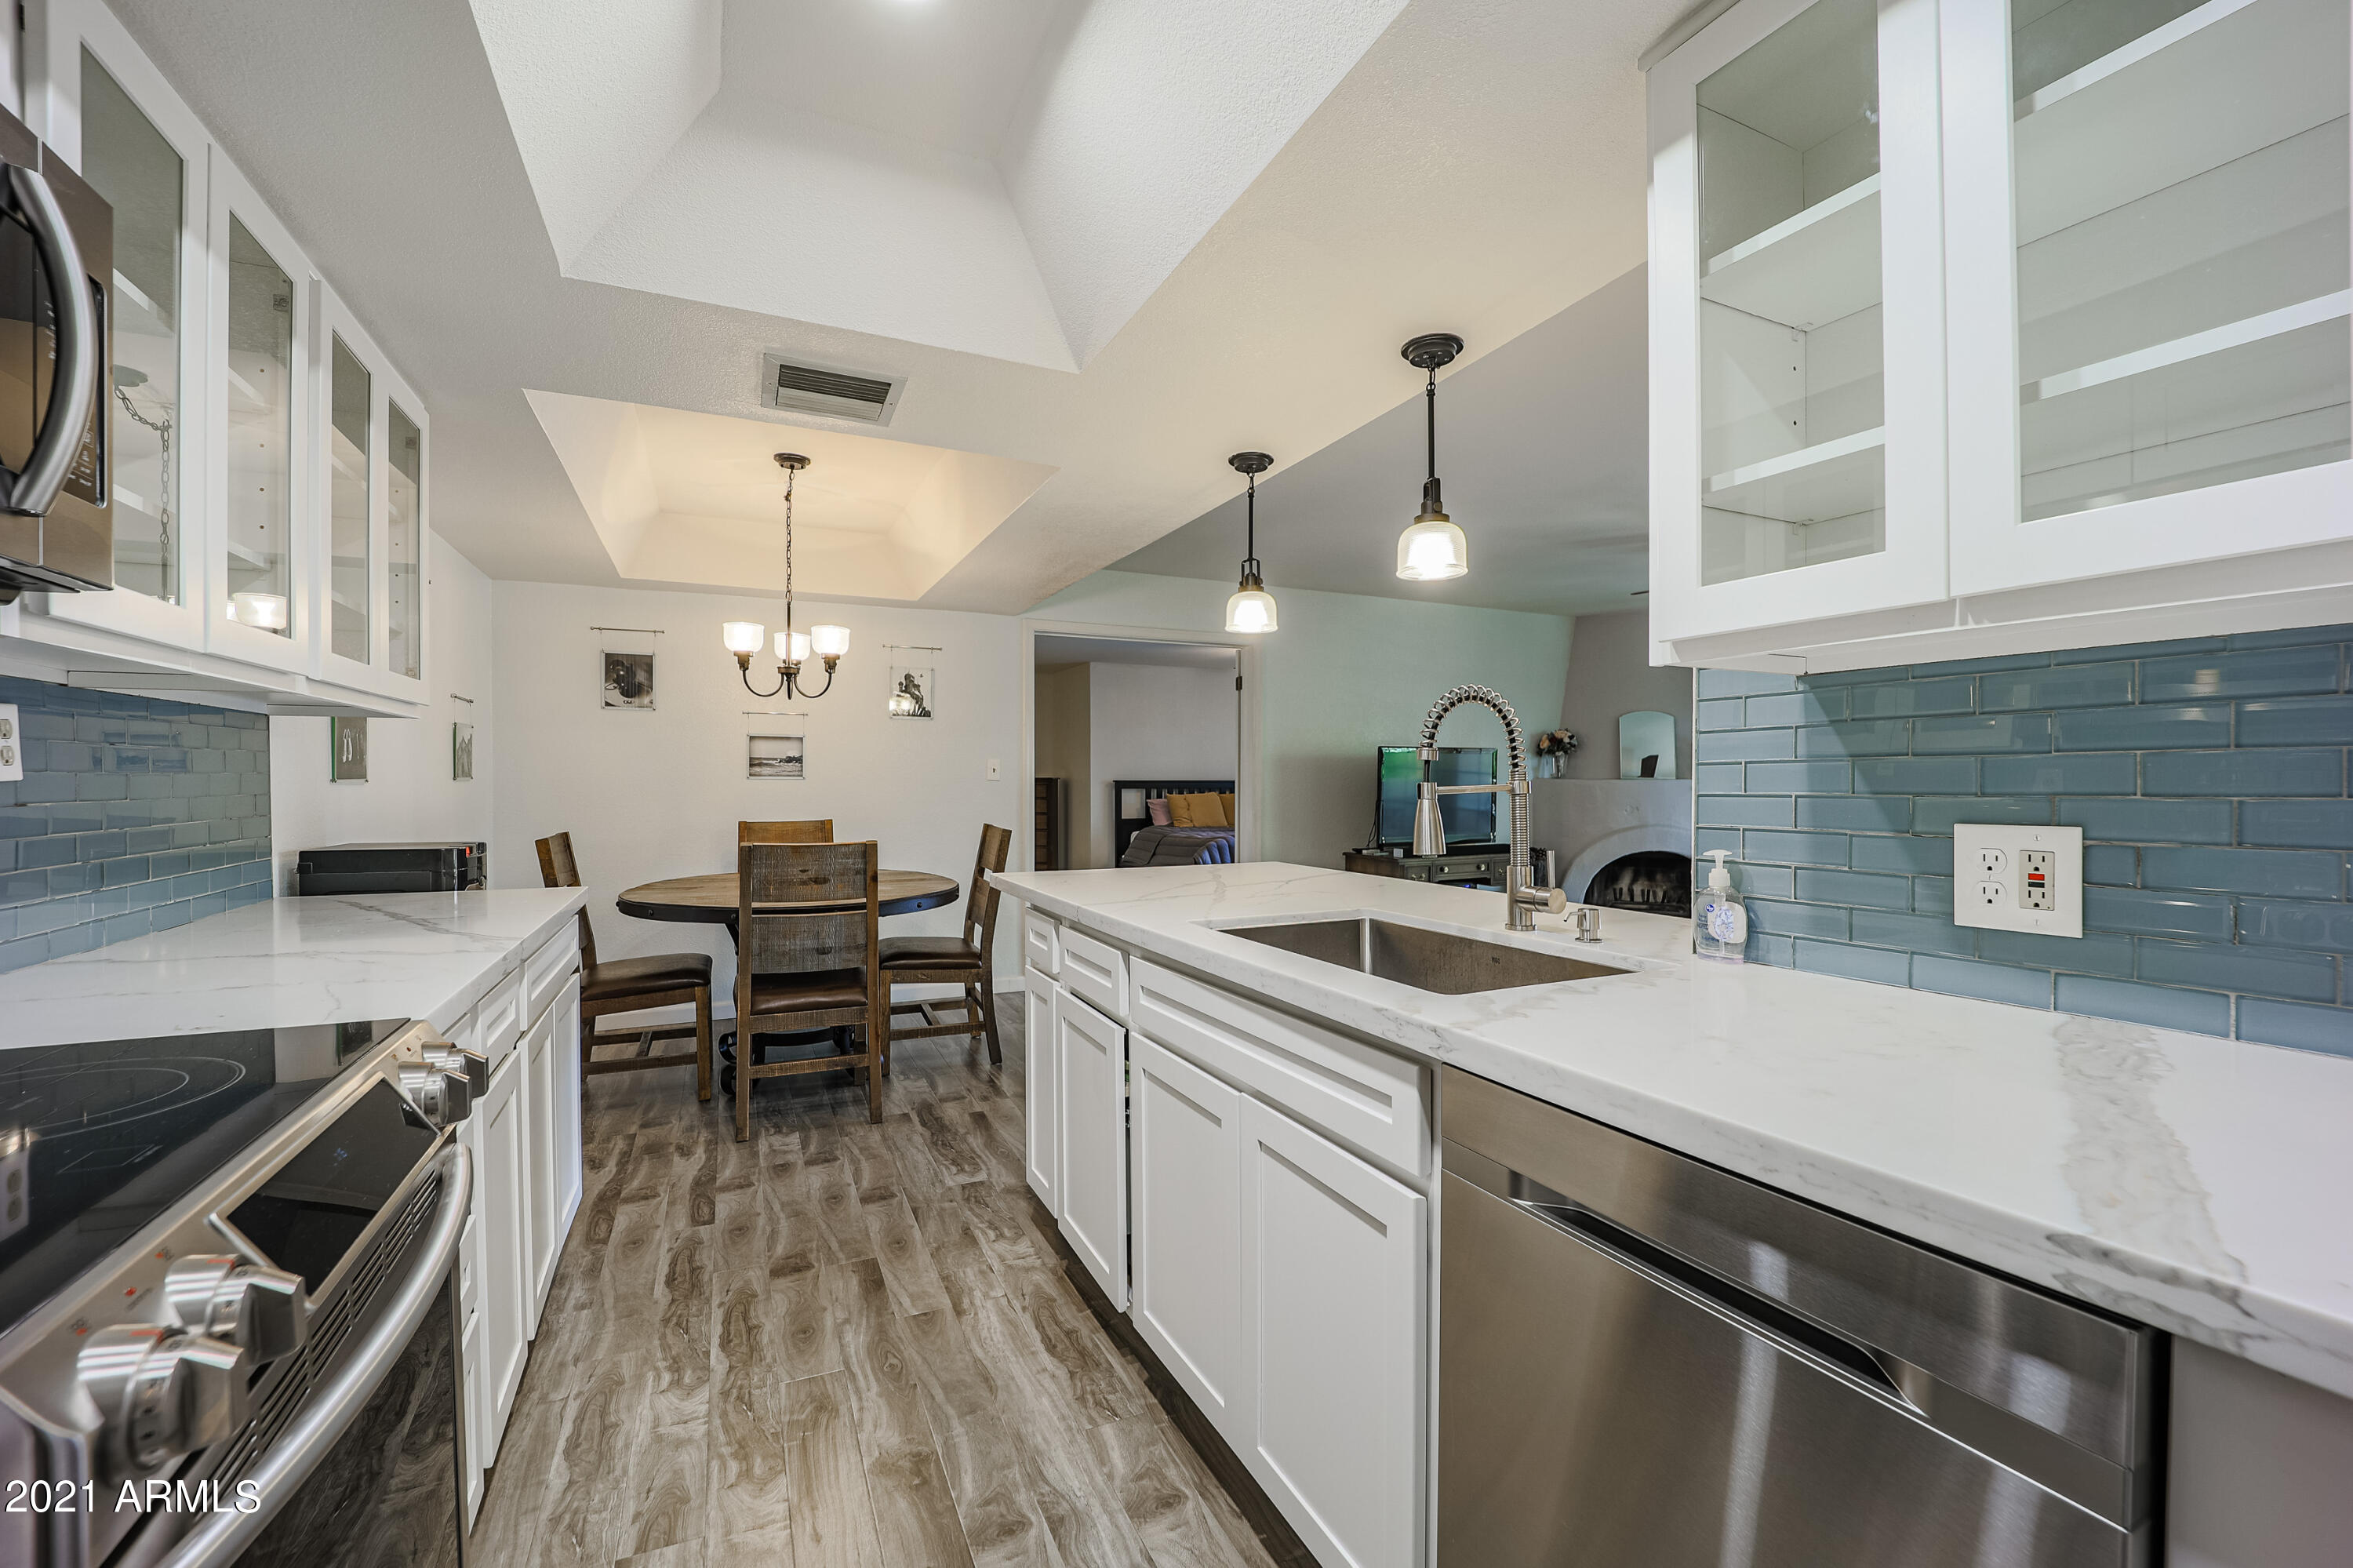 Hurry and get a showing in while you can because this beautifully updated 3 bed/2 bath condo will not last long! Located in the gated Pointe Tapatio Resort community, this second floor unit offers pool and mountain views from the covered patio. The spacious interior concept features wood-look tile, a corner adobe fireplace, and an open eat-in kitchen with a breakfast bar, subway tile backsplash, shaker-style cabinetry, quartz countertops, and sleek stainless steel appliances. The oversized master retreat features a nicely updated en-suite bathroom and private balcony. Enjoy interior laundry, three community pools, tennis courts, covered parking, and easy access to fantastic hiking trails at the nearby Phoenix mountain preserve.